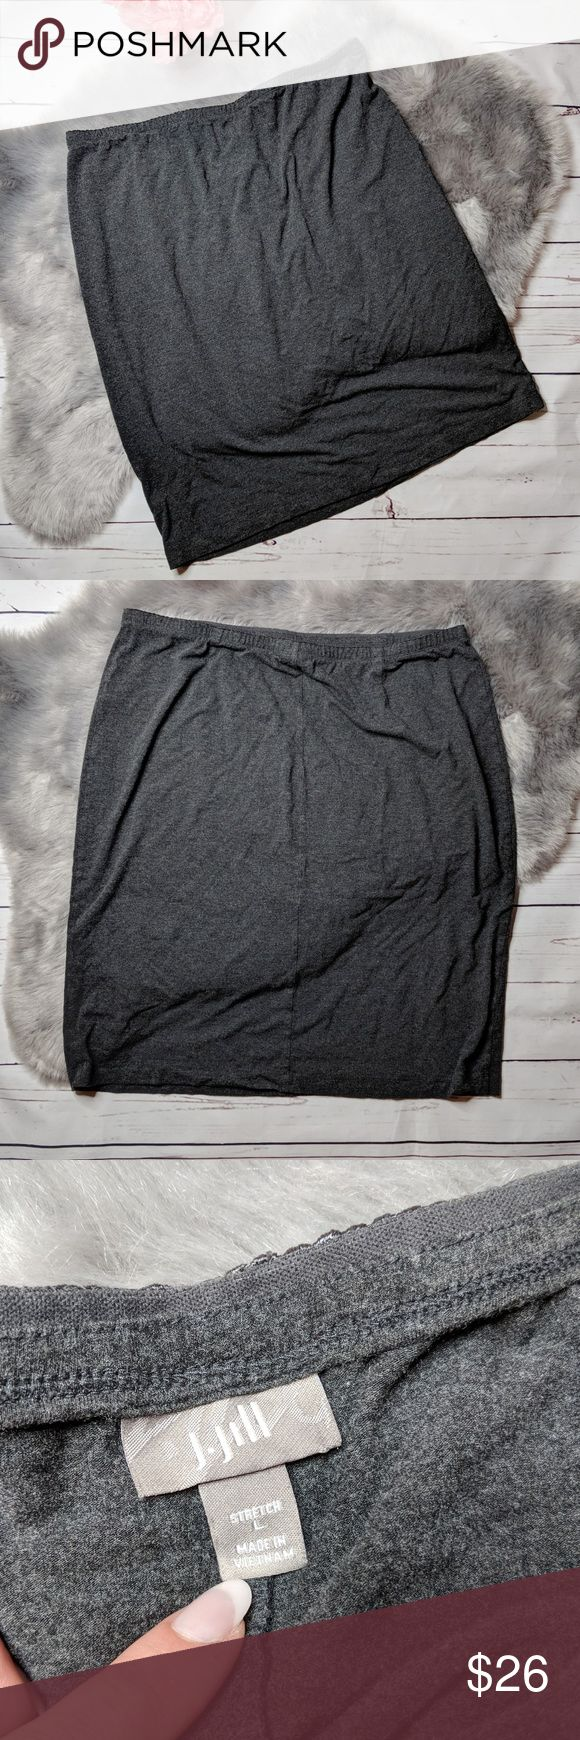 J.JILL • casual grey stretch skirt J Jill stretch cotton blend casual skirt, elastic waistband, knee length, straight fit. Excellent condition, no obvious signs of wear. No pilling, stains, tears or holes.   MEASUREMENTS: Flat waist: 18 in Length: 24 in J. Jill Skirts